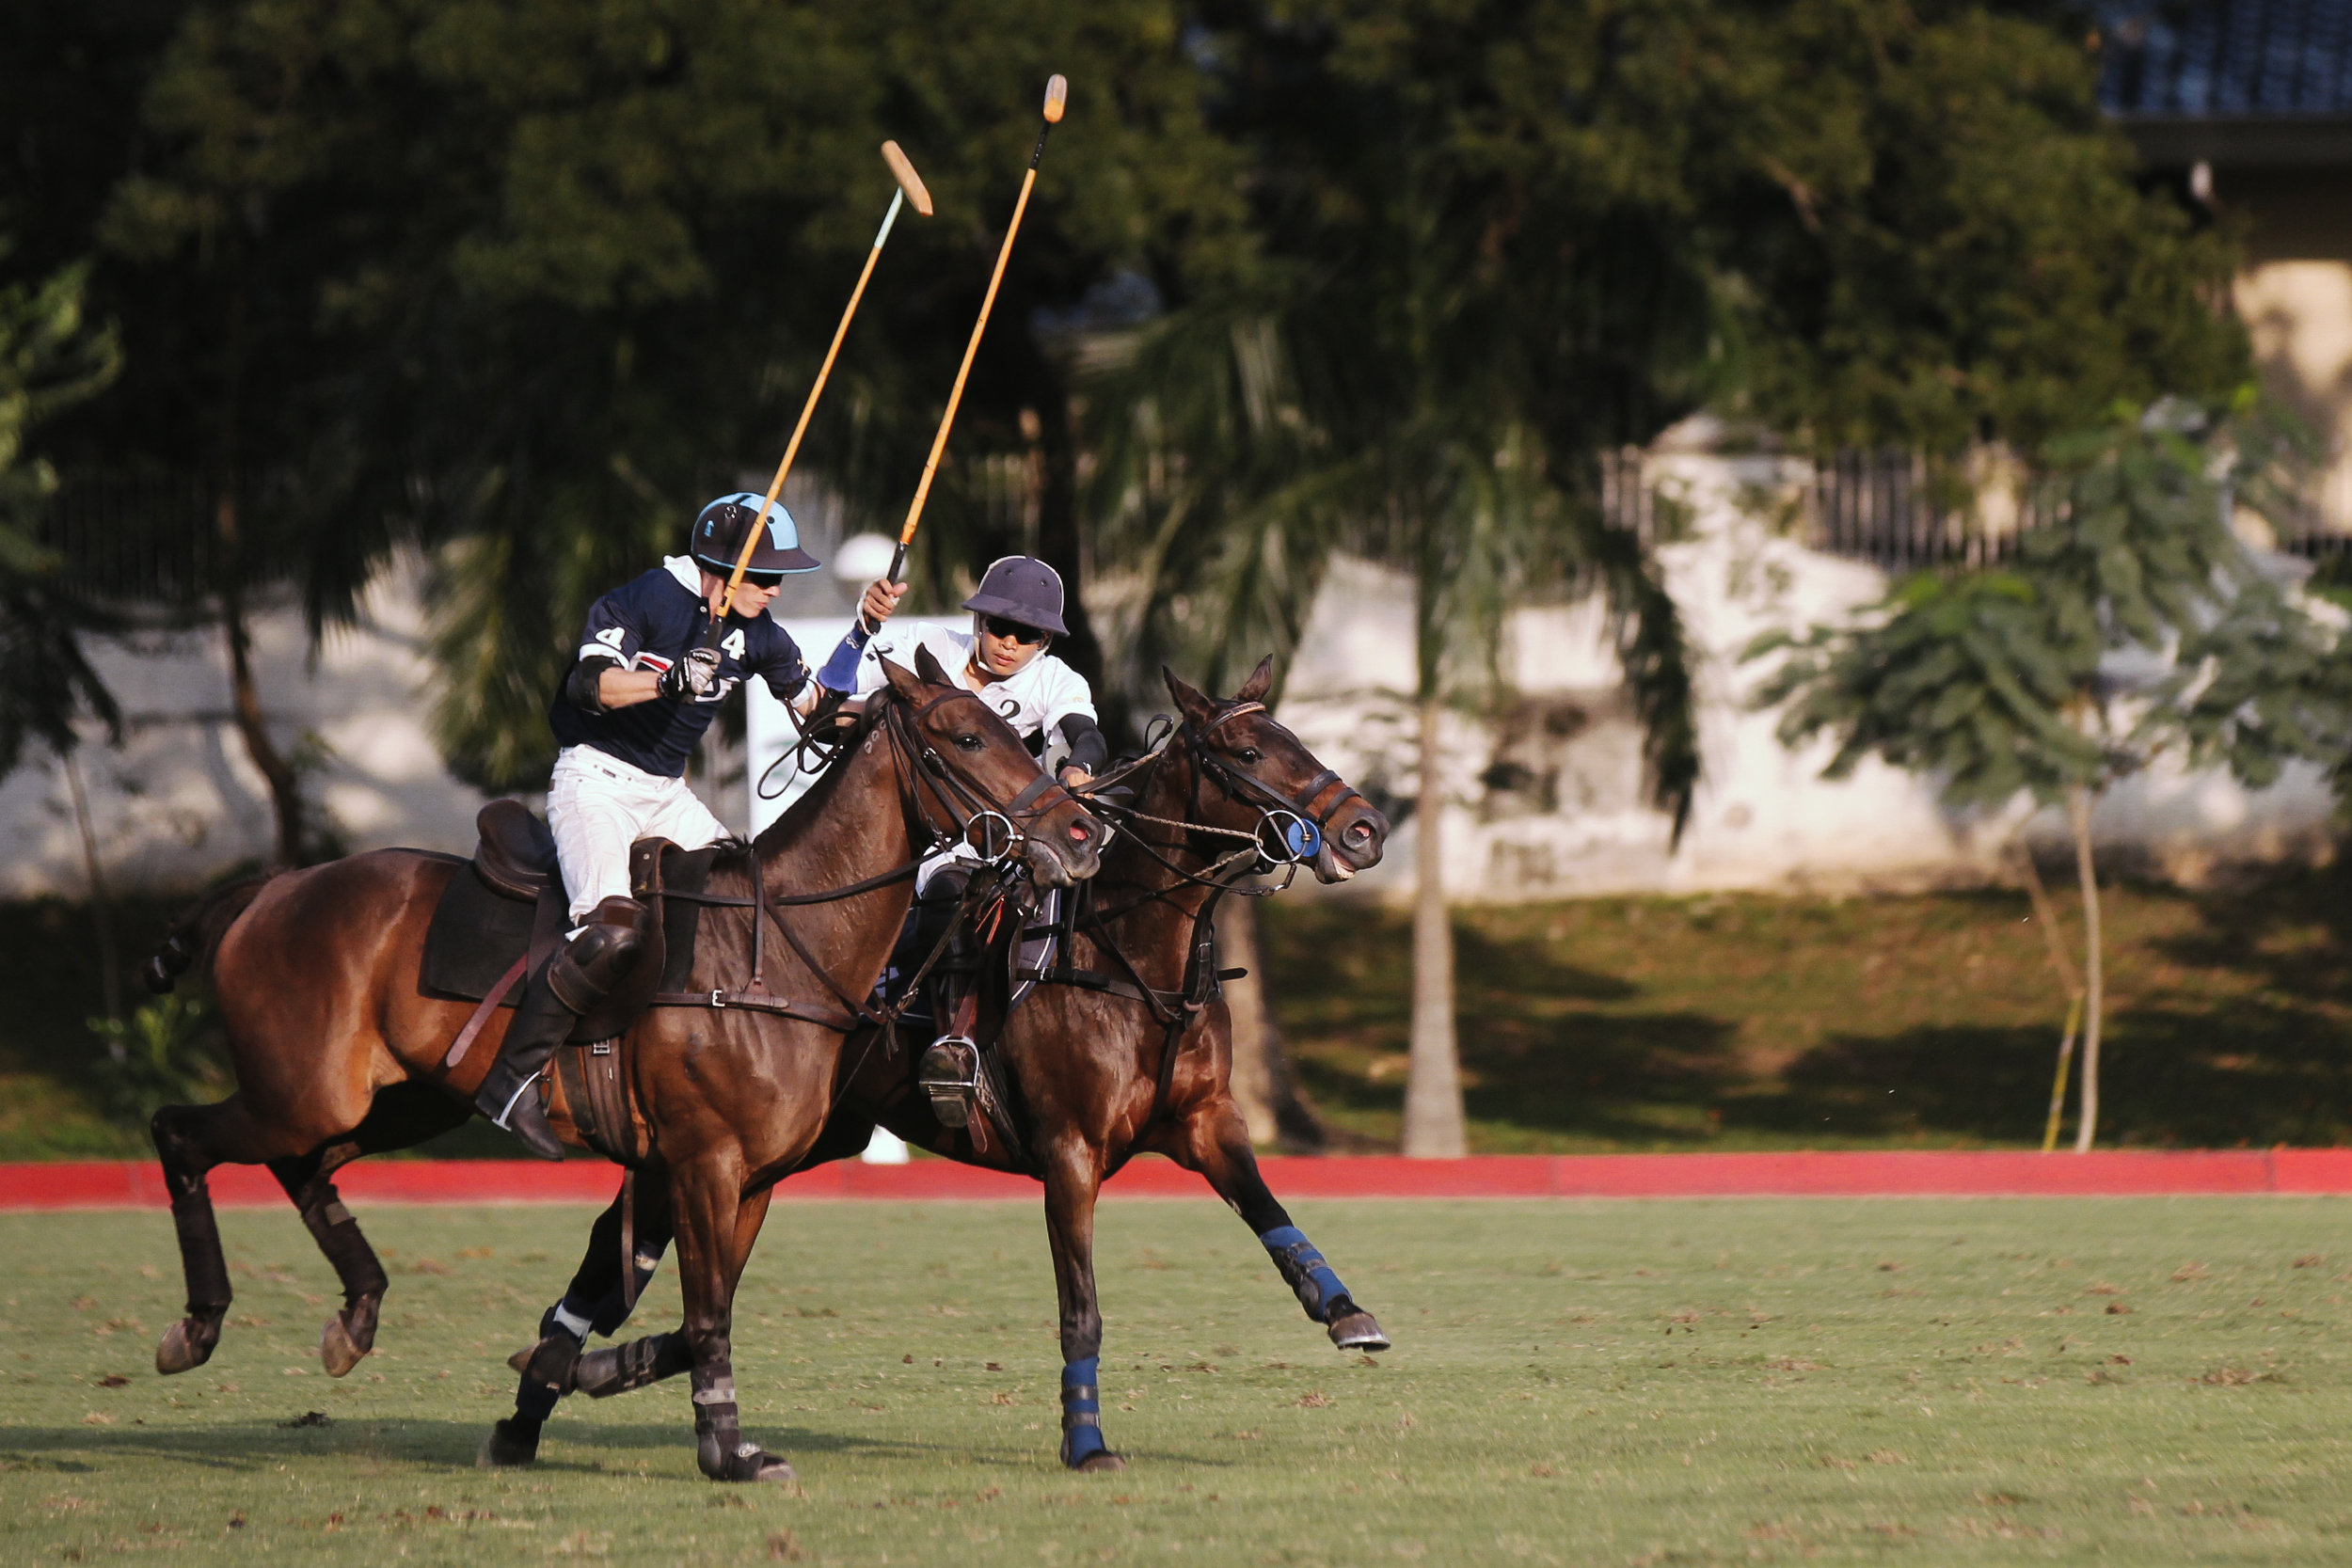 FILA Polo Cup 2017_High Goal-52.jpg